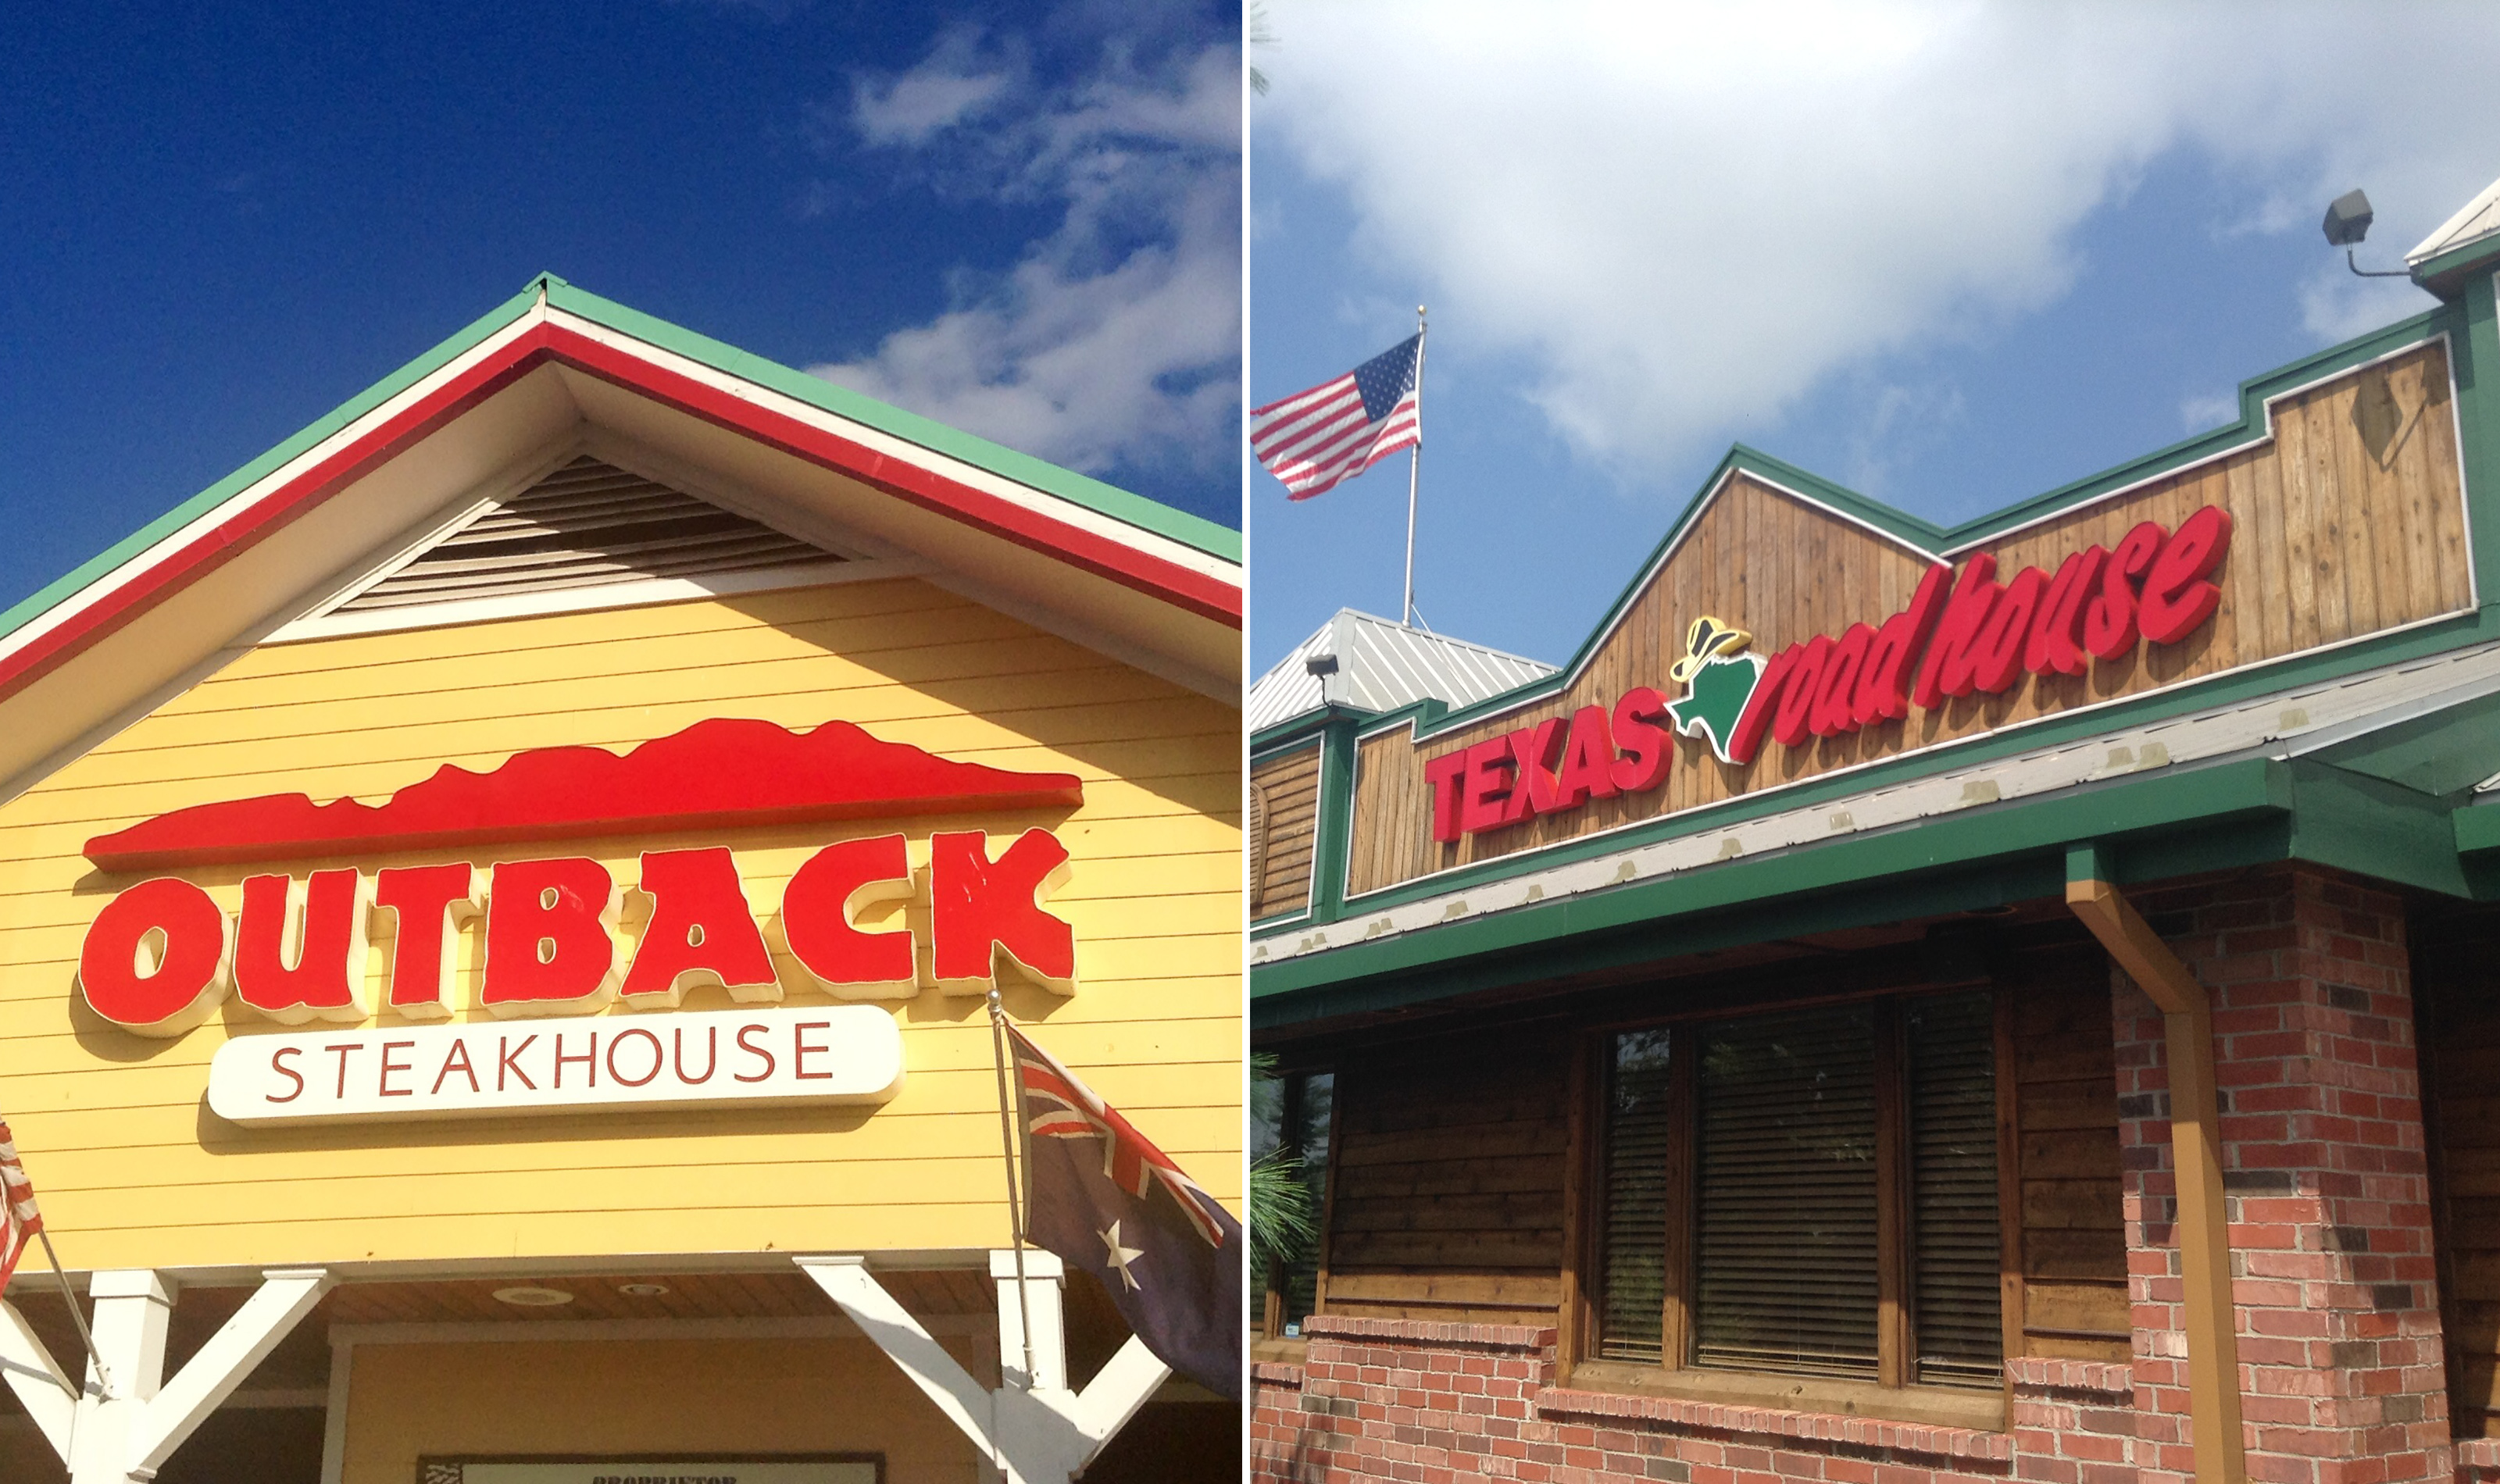 Simple Texas Roadhouse Is A Sign Ofend Times Munchies Meme Battle Between Outback Steakhouse Meme Battle Between Outback Steakhouse Texas Roadhouse Is A nice food Texas Road House Hours